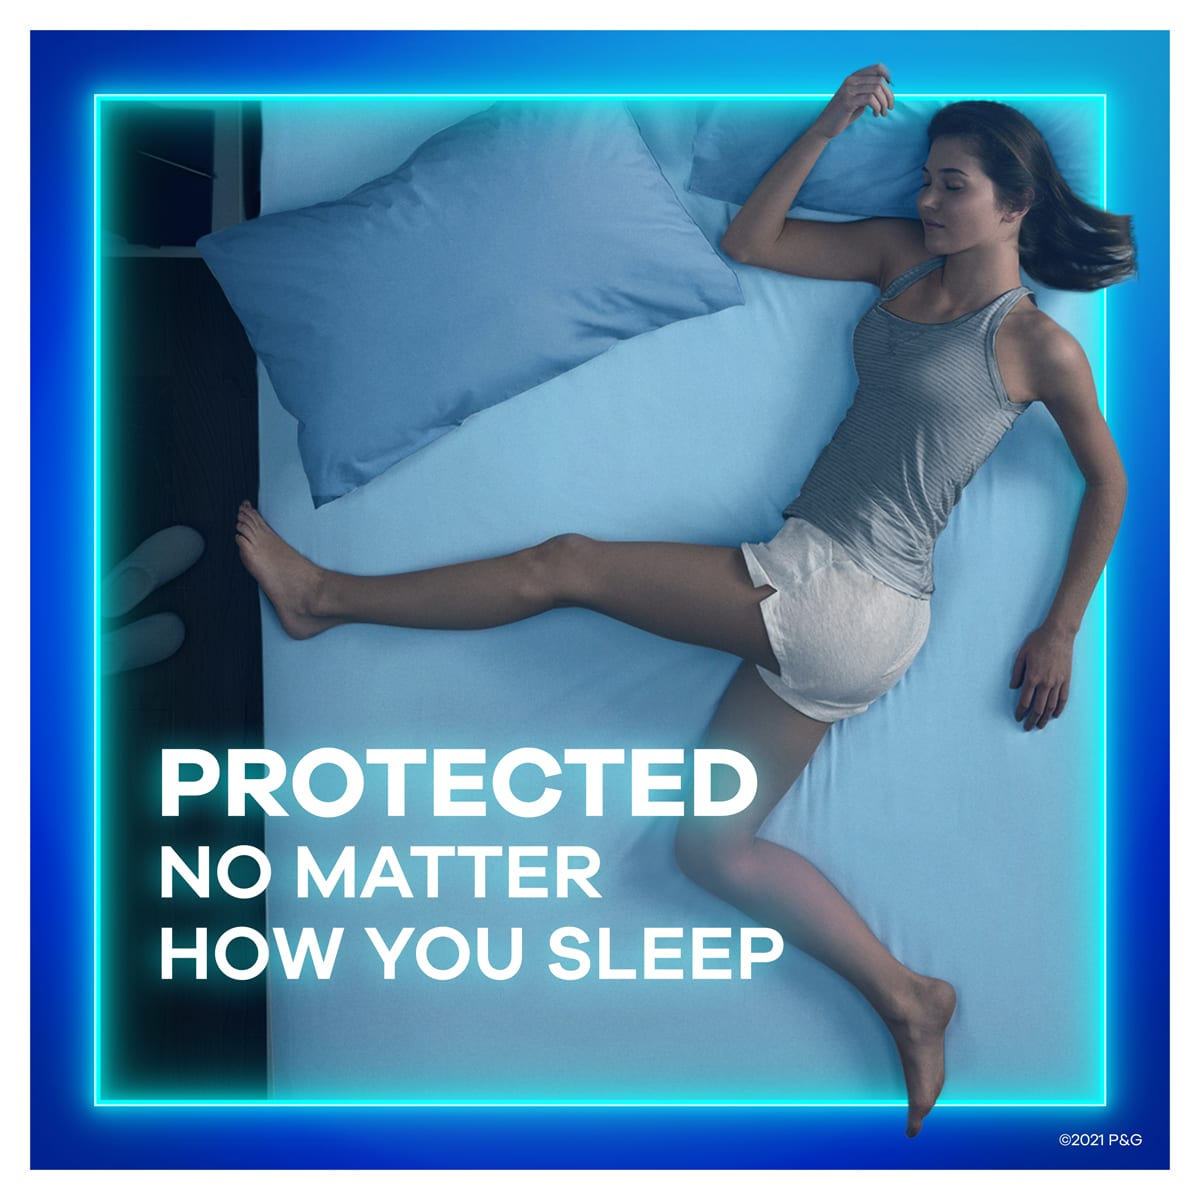 Always Ultra Protected No Matter How You Sleep